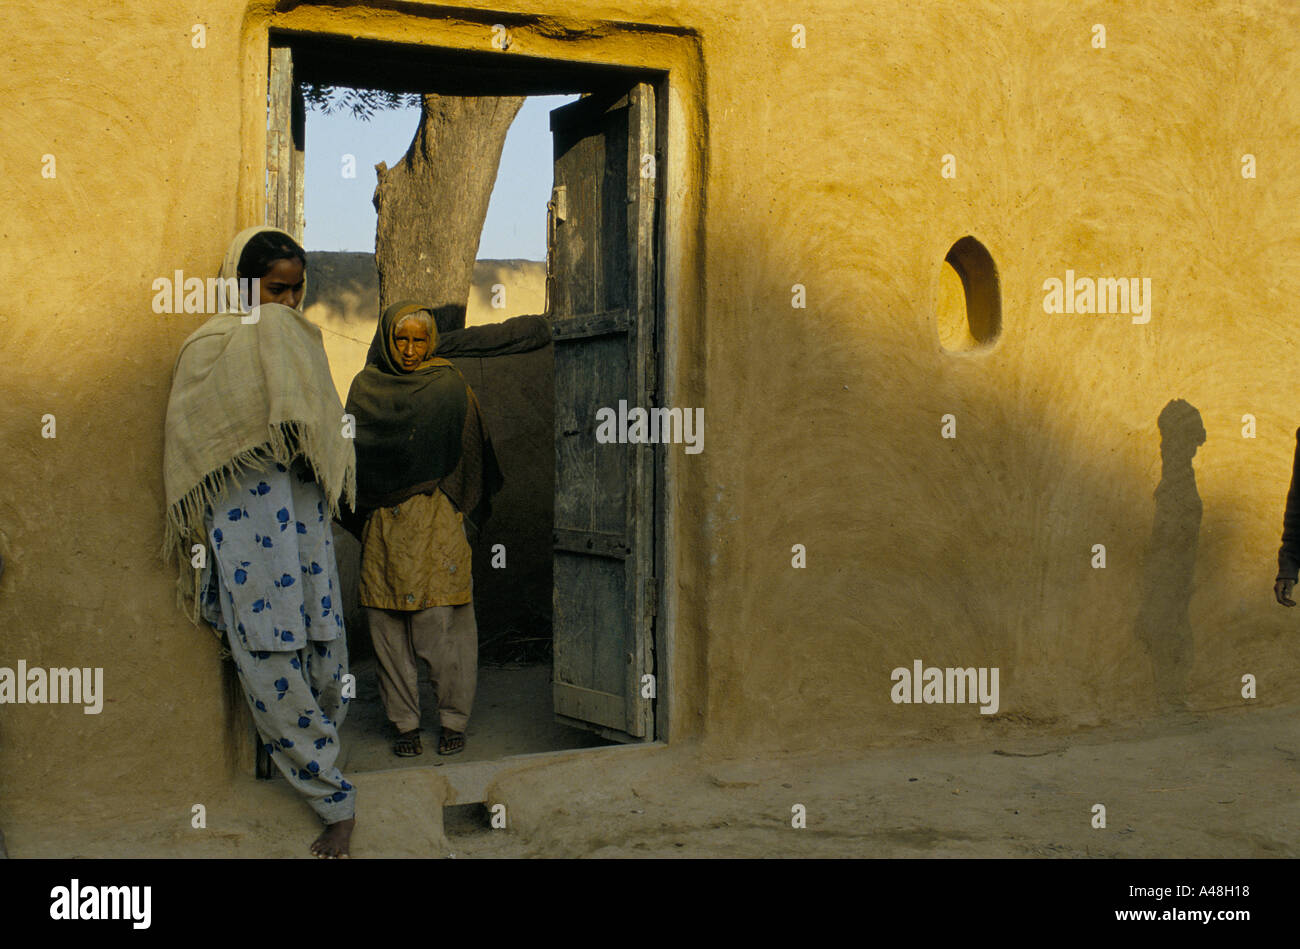 moslem women in a village near Alligarh north india - Stock Image